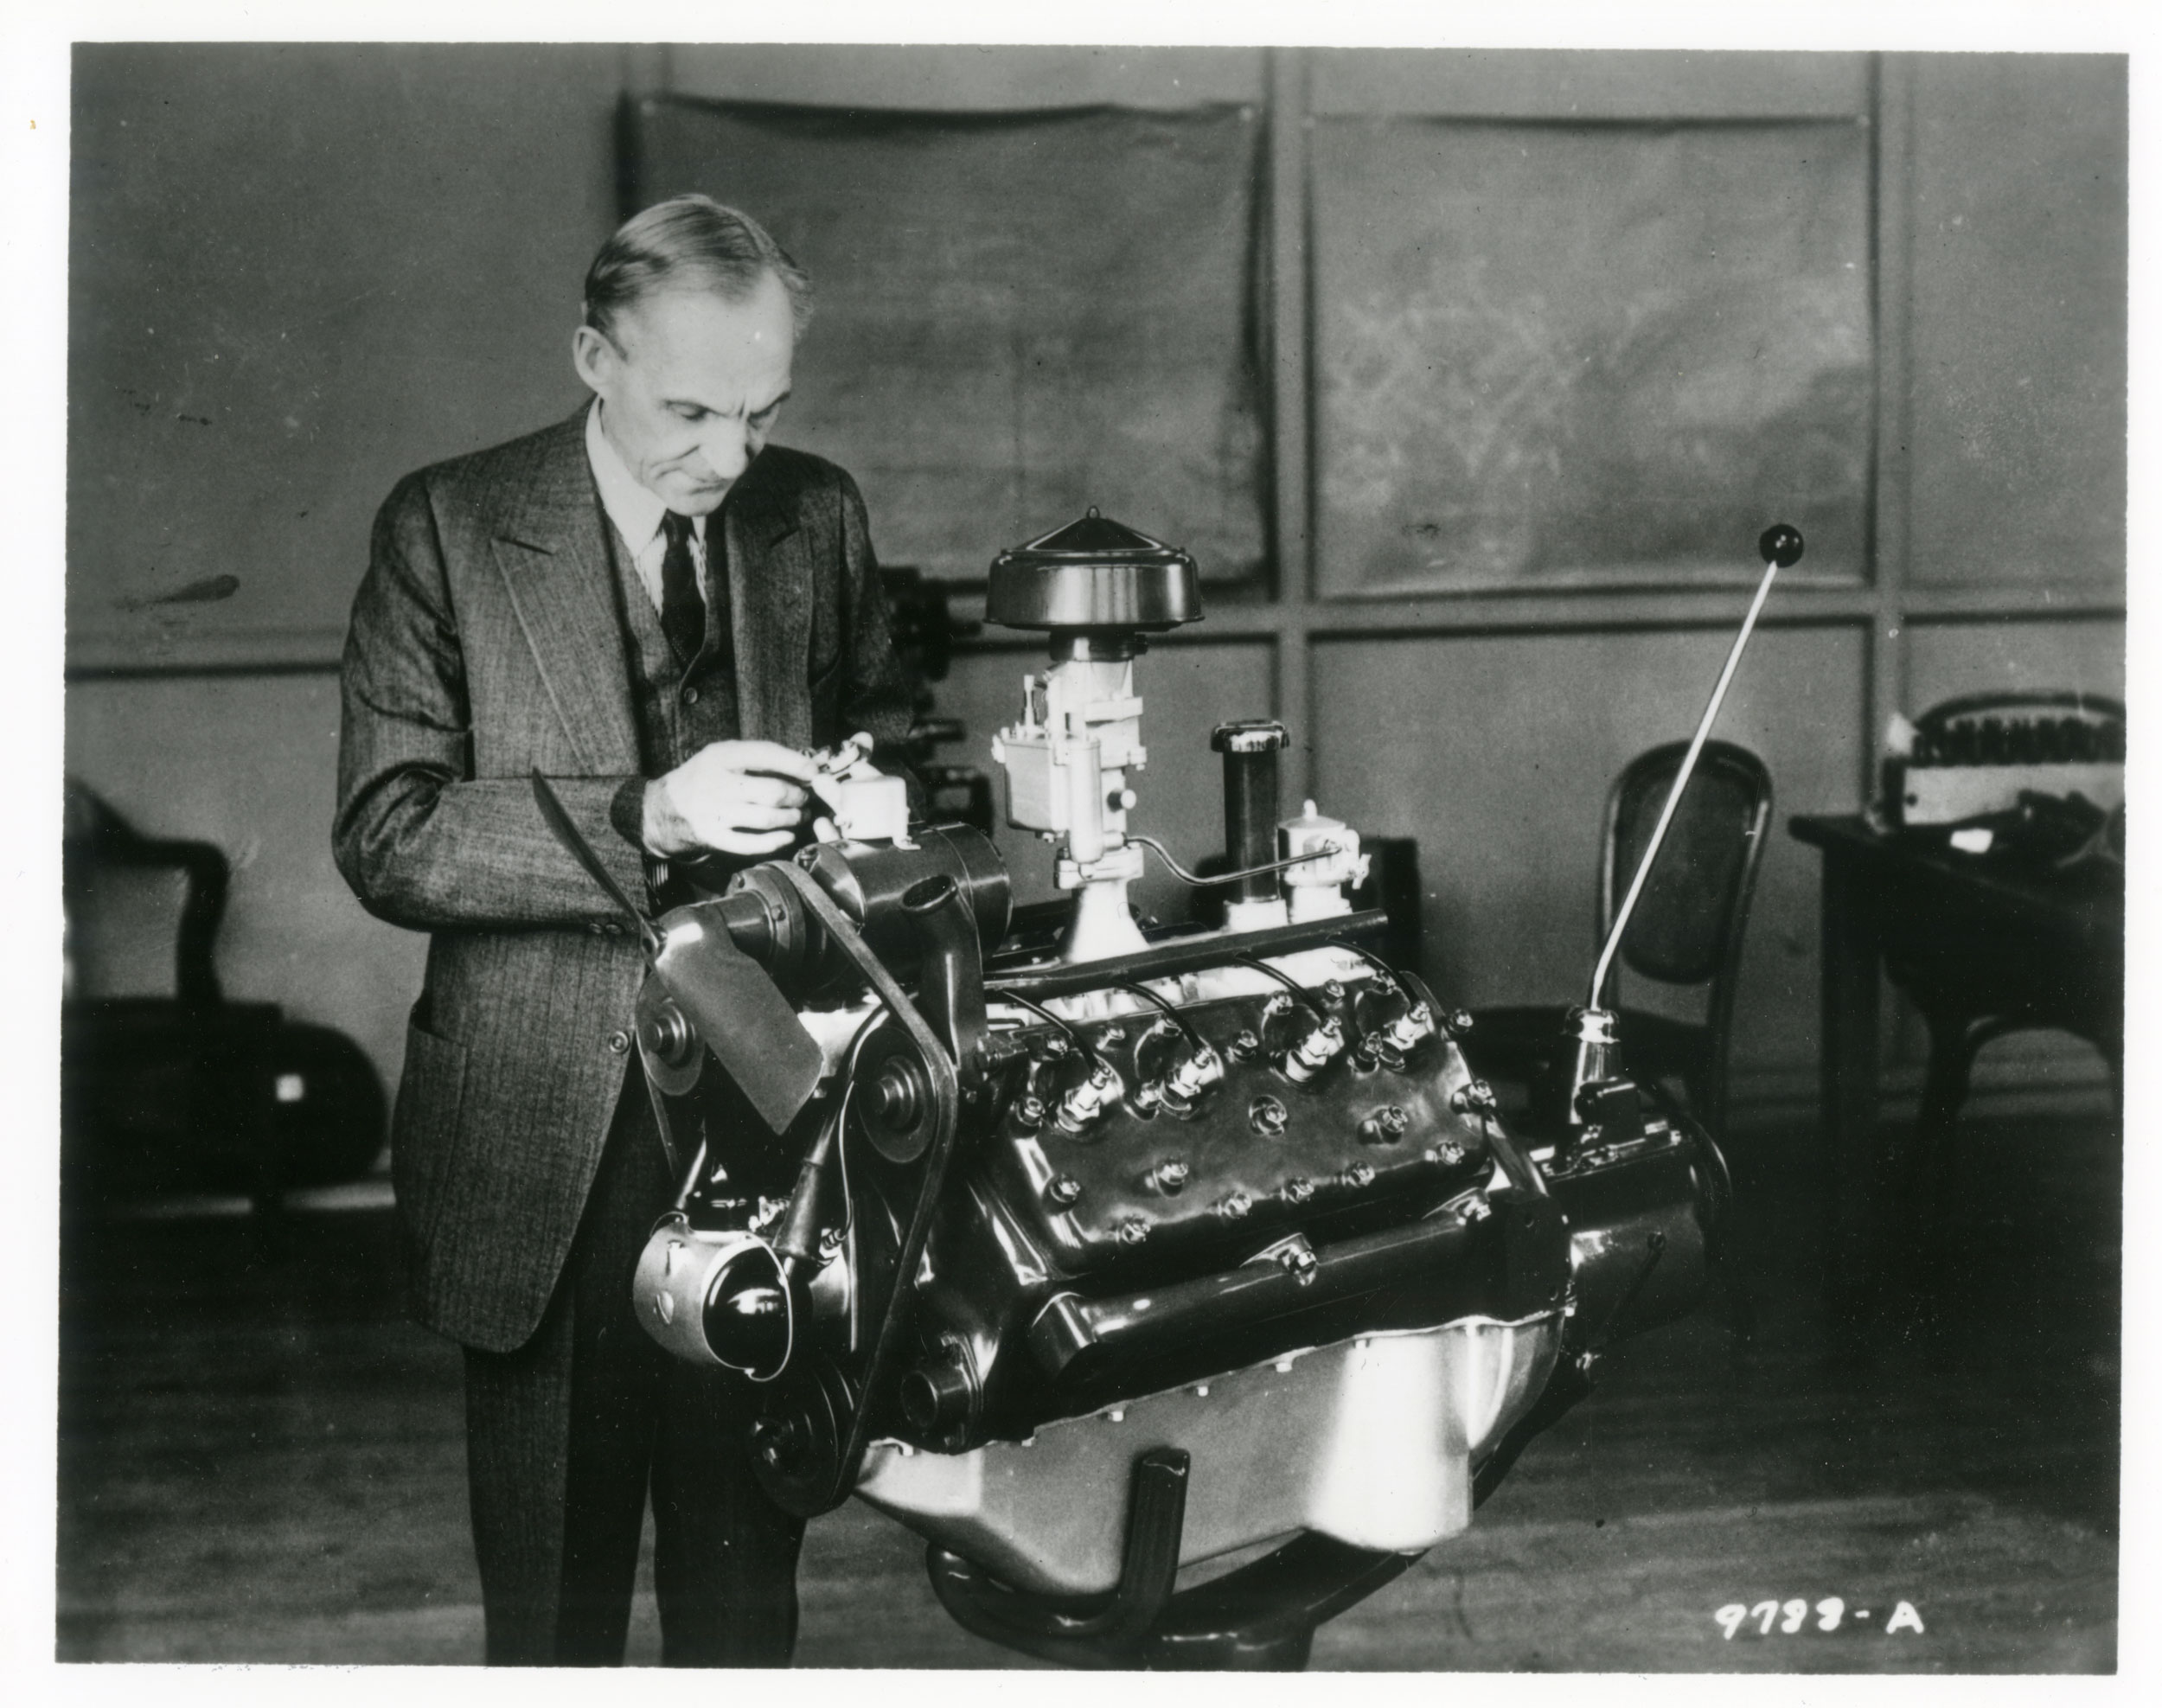 Henry Ford risked his entire enterprise to develop and produce a V-8 engine for mass produced cars. In the process, he made a legend that powered the hot rod movement.